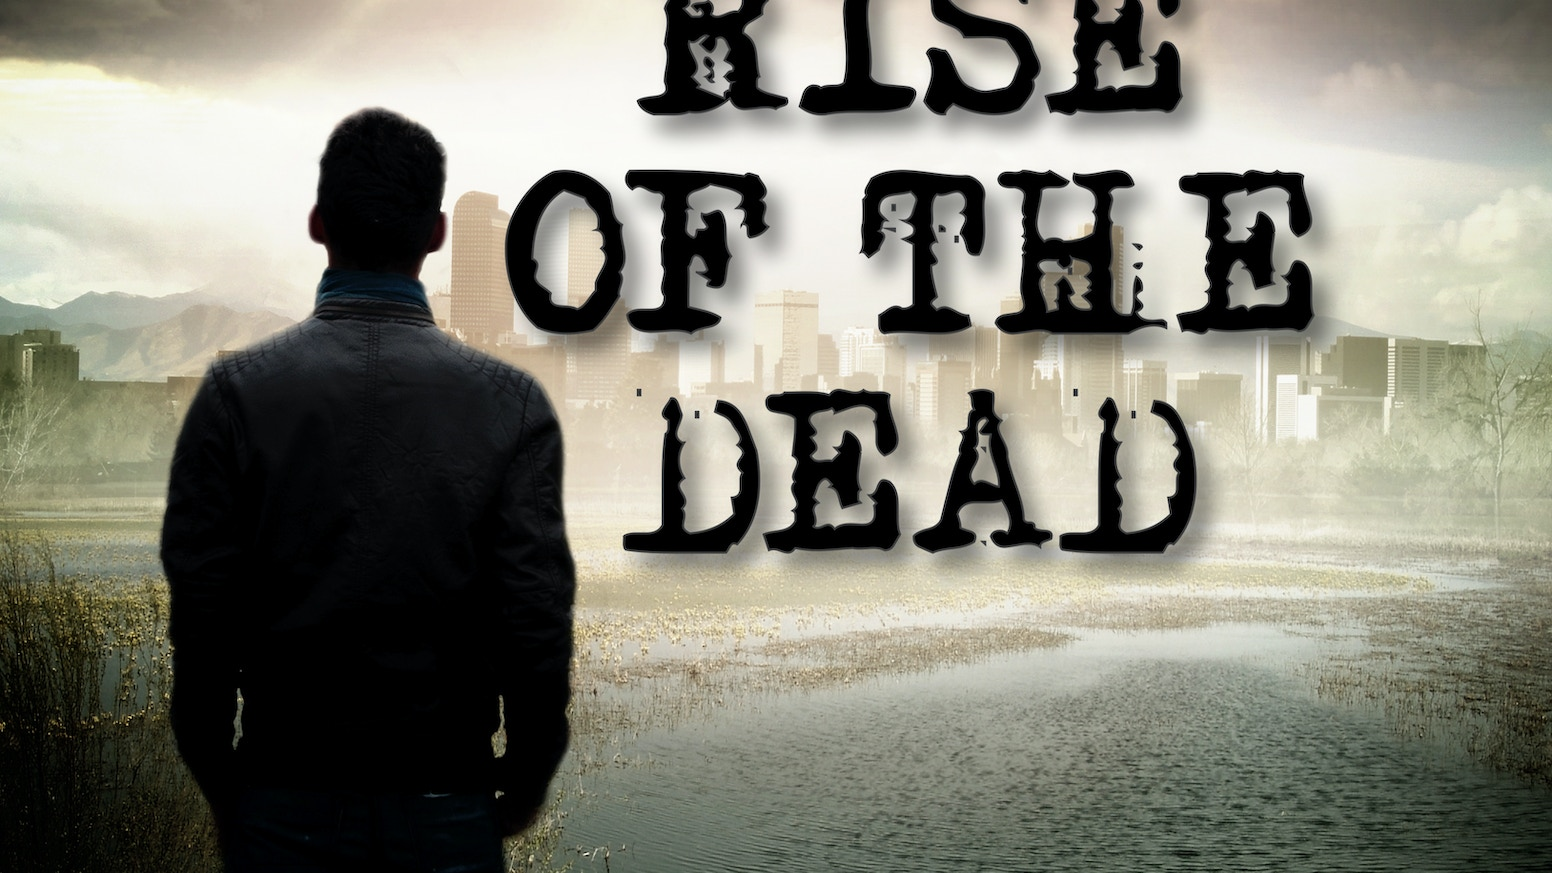 A zombie novel with a lot of guts to it. Rise of the Dead aims for the brain, blending literary fiction with post-apocalyptic thrills.